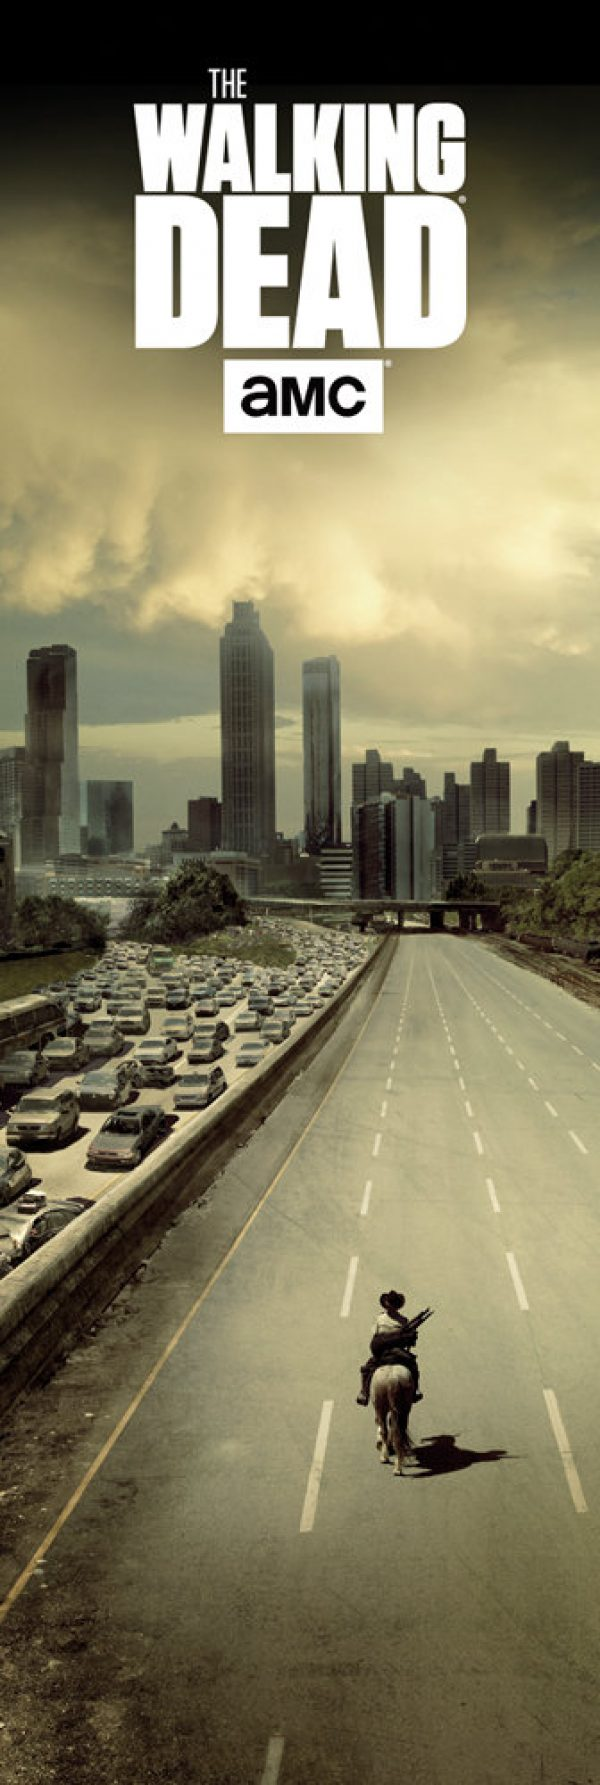 The Walking Dead - Riding in to town